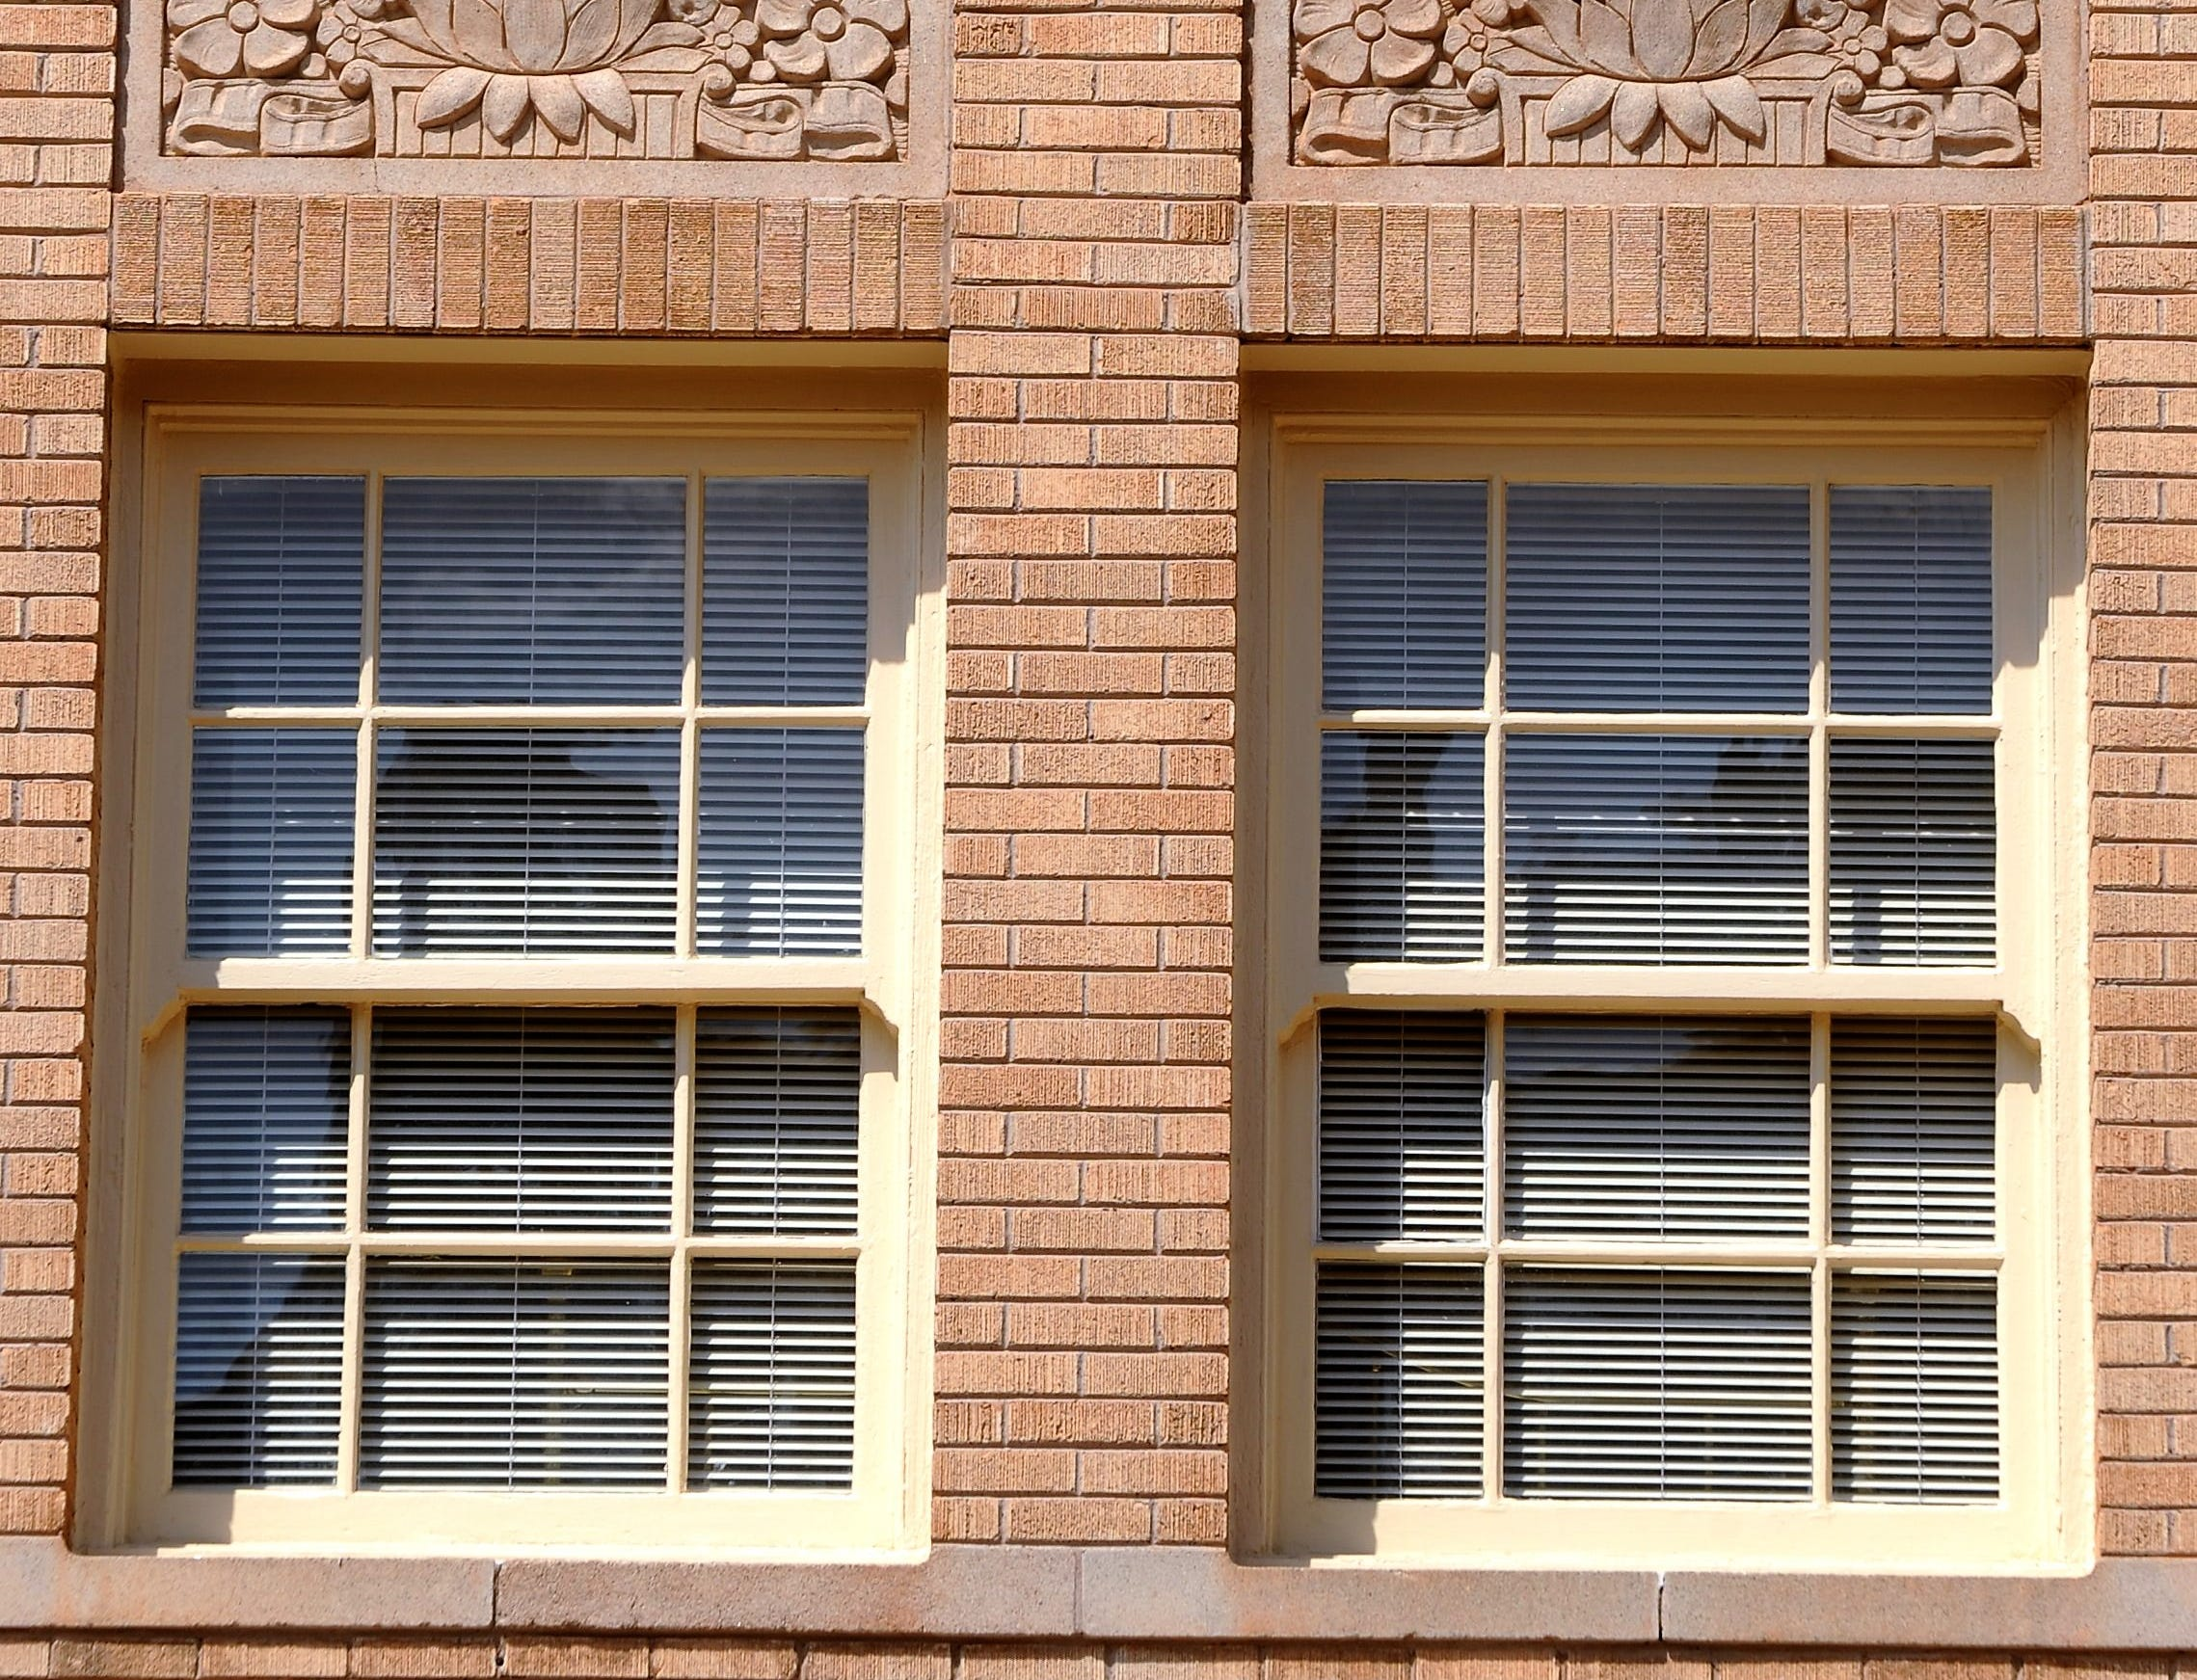 Detail on the Hotel Wooten building.